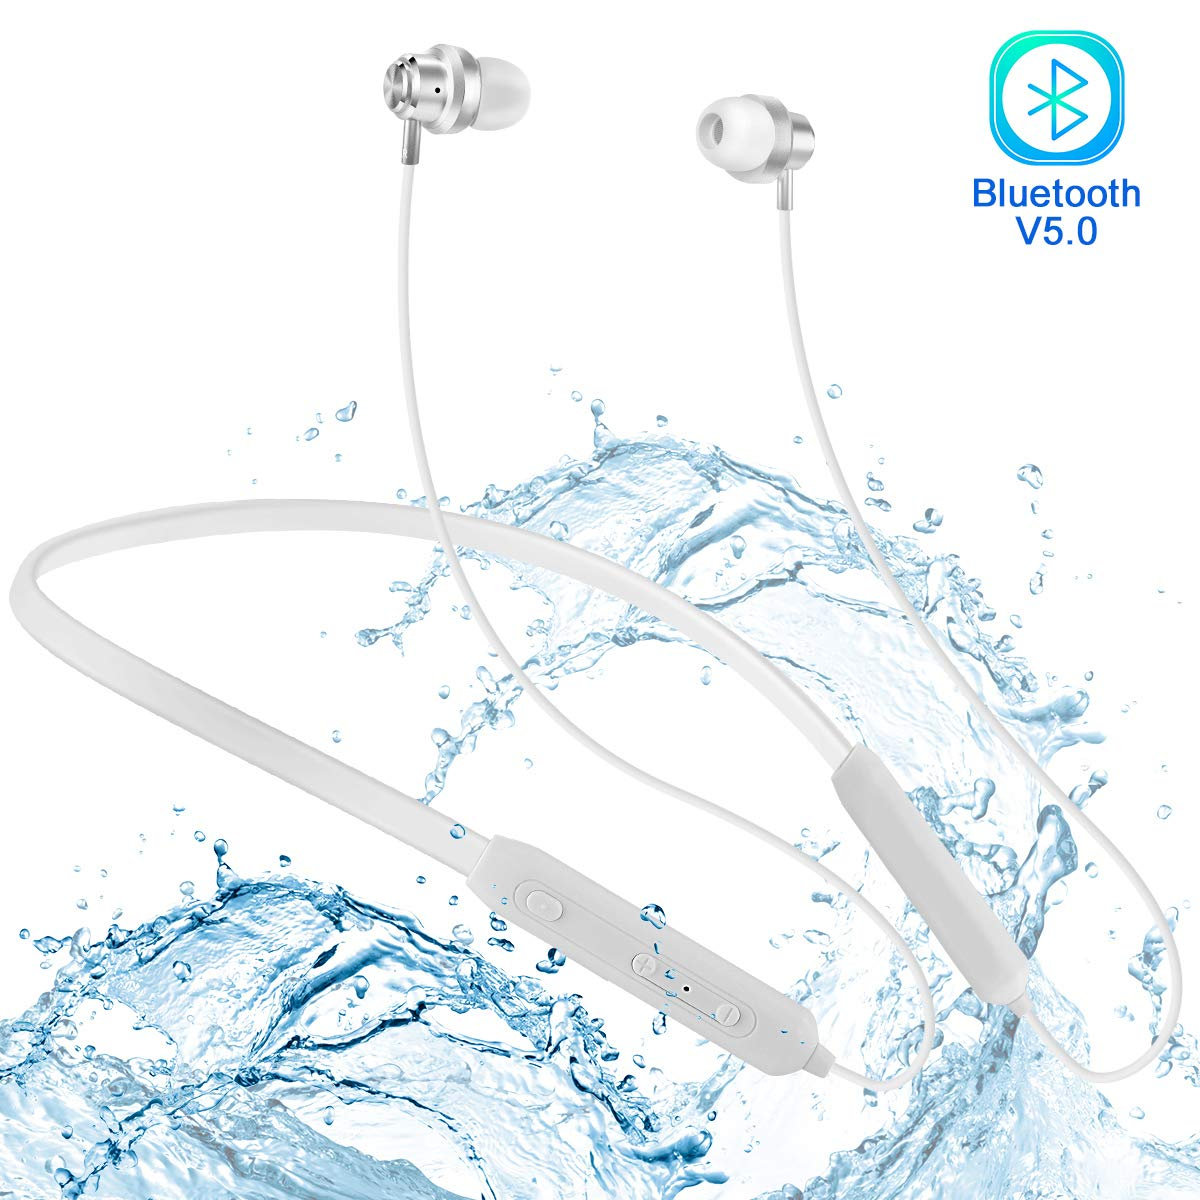 [2019 Upgraded Stereo] Bluetooth Headphones Neckband, DPRUI V5.0 Wireless Sports Headset Noise Canceling IPX7 Waterproof for Running/Gym(White)